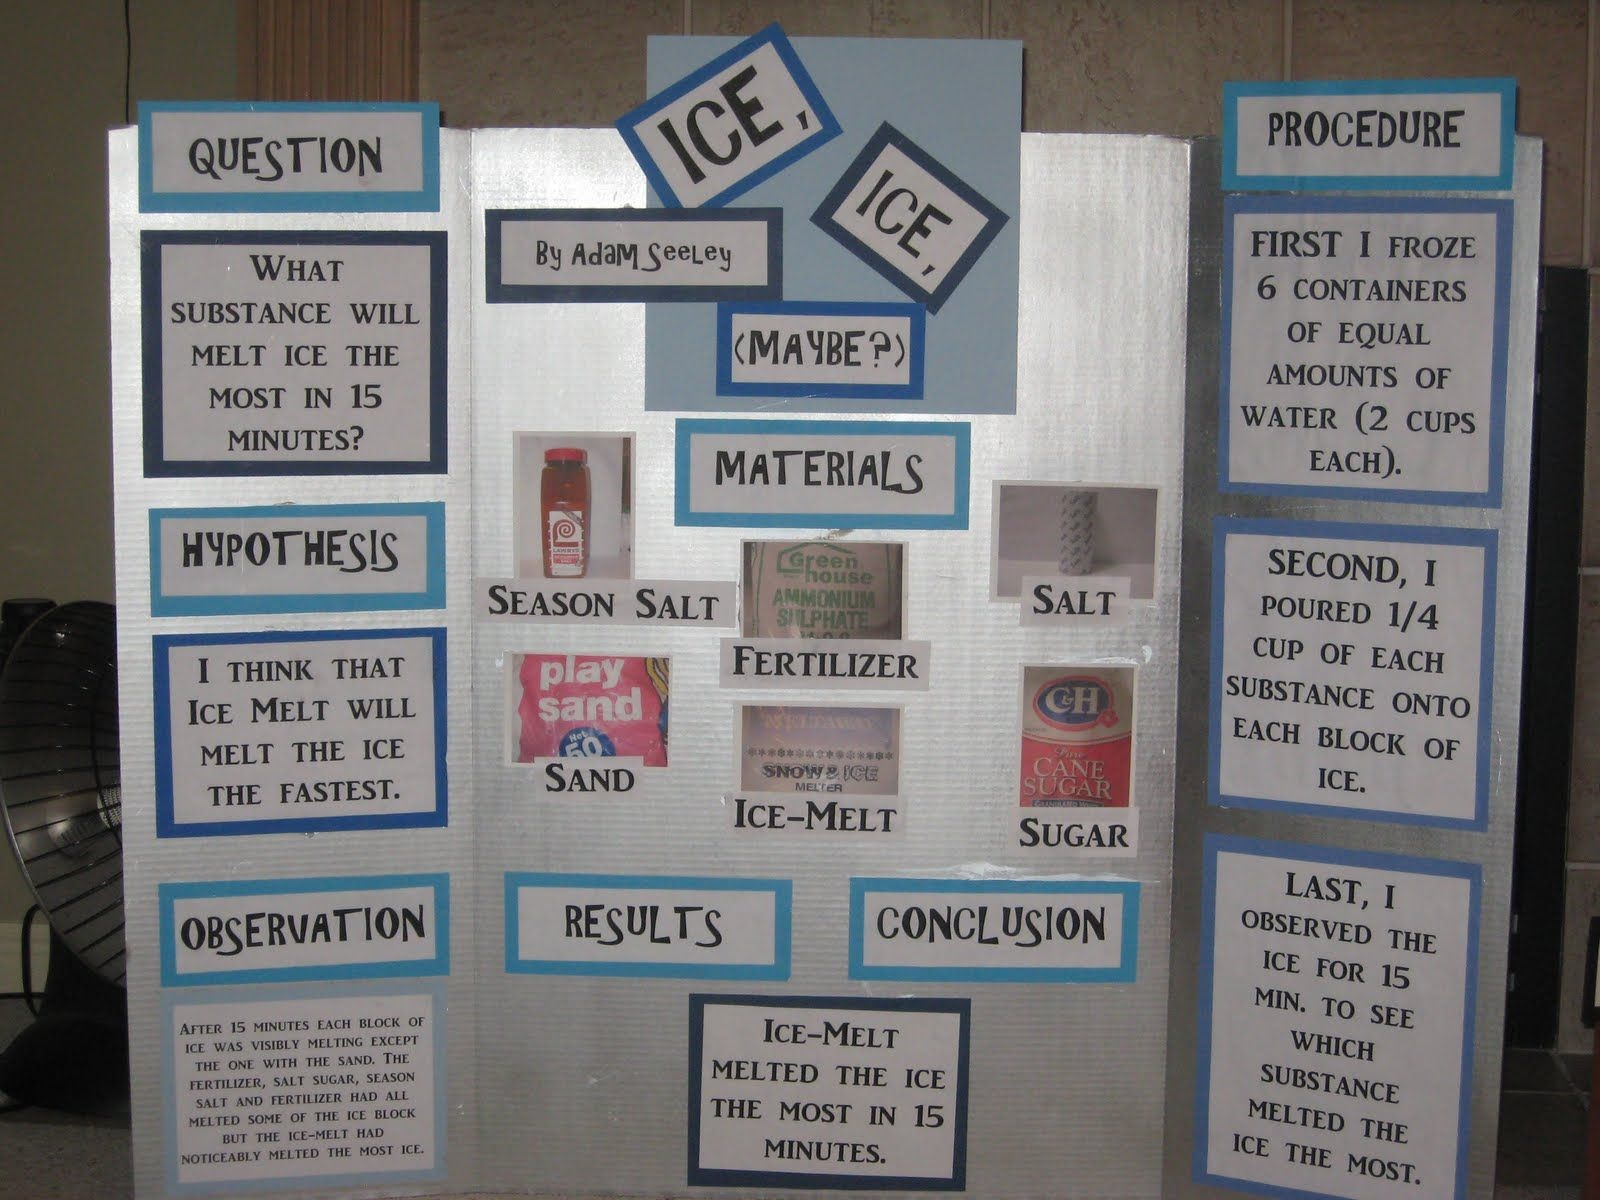 Ice Science Fair Project | Science Project | Science Fair Projects - Free Printable Science Fair Project Board Labels